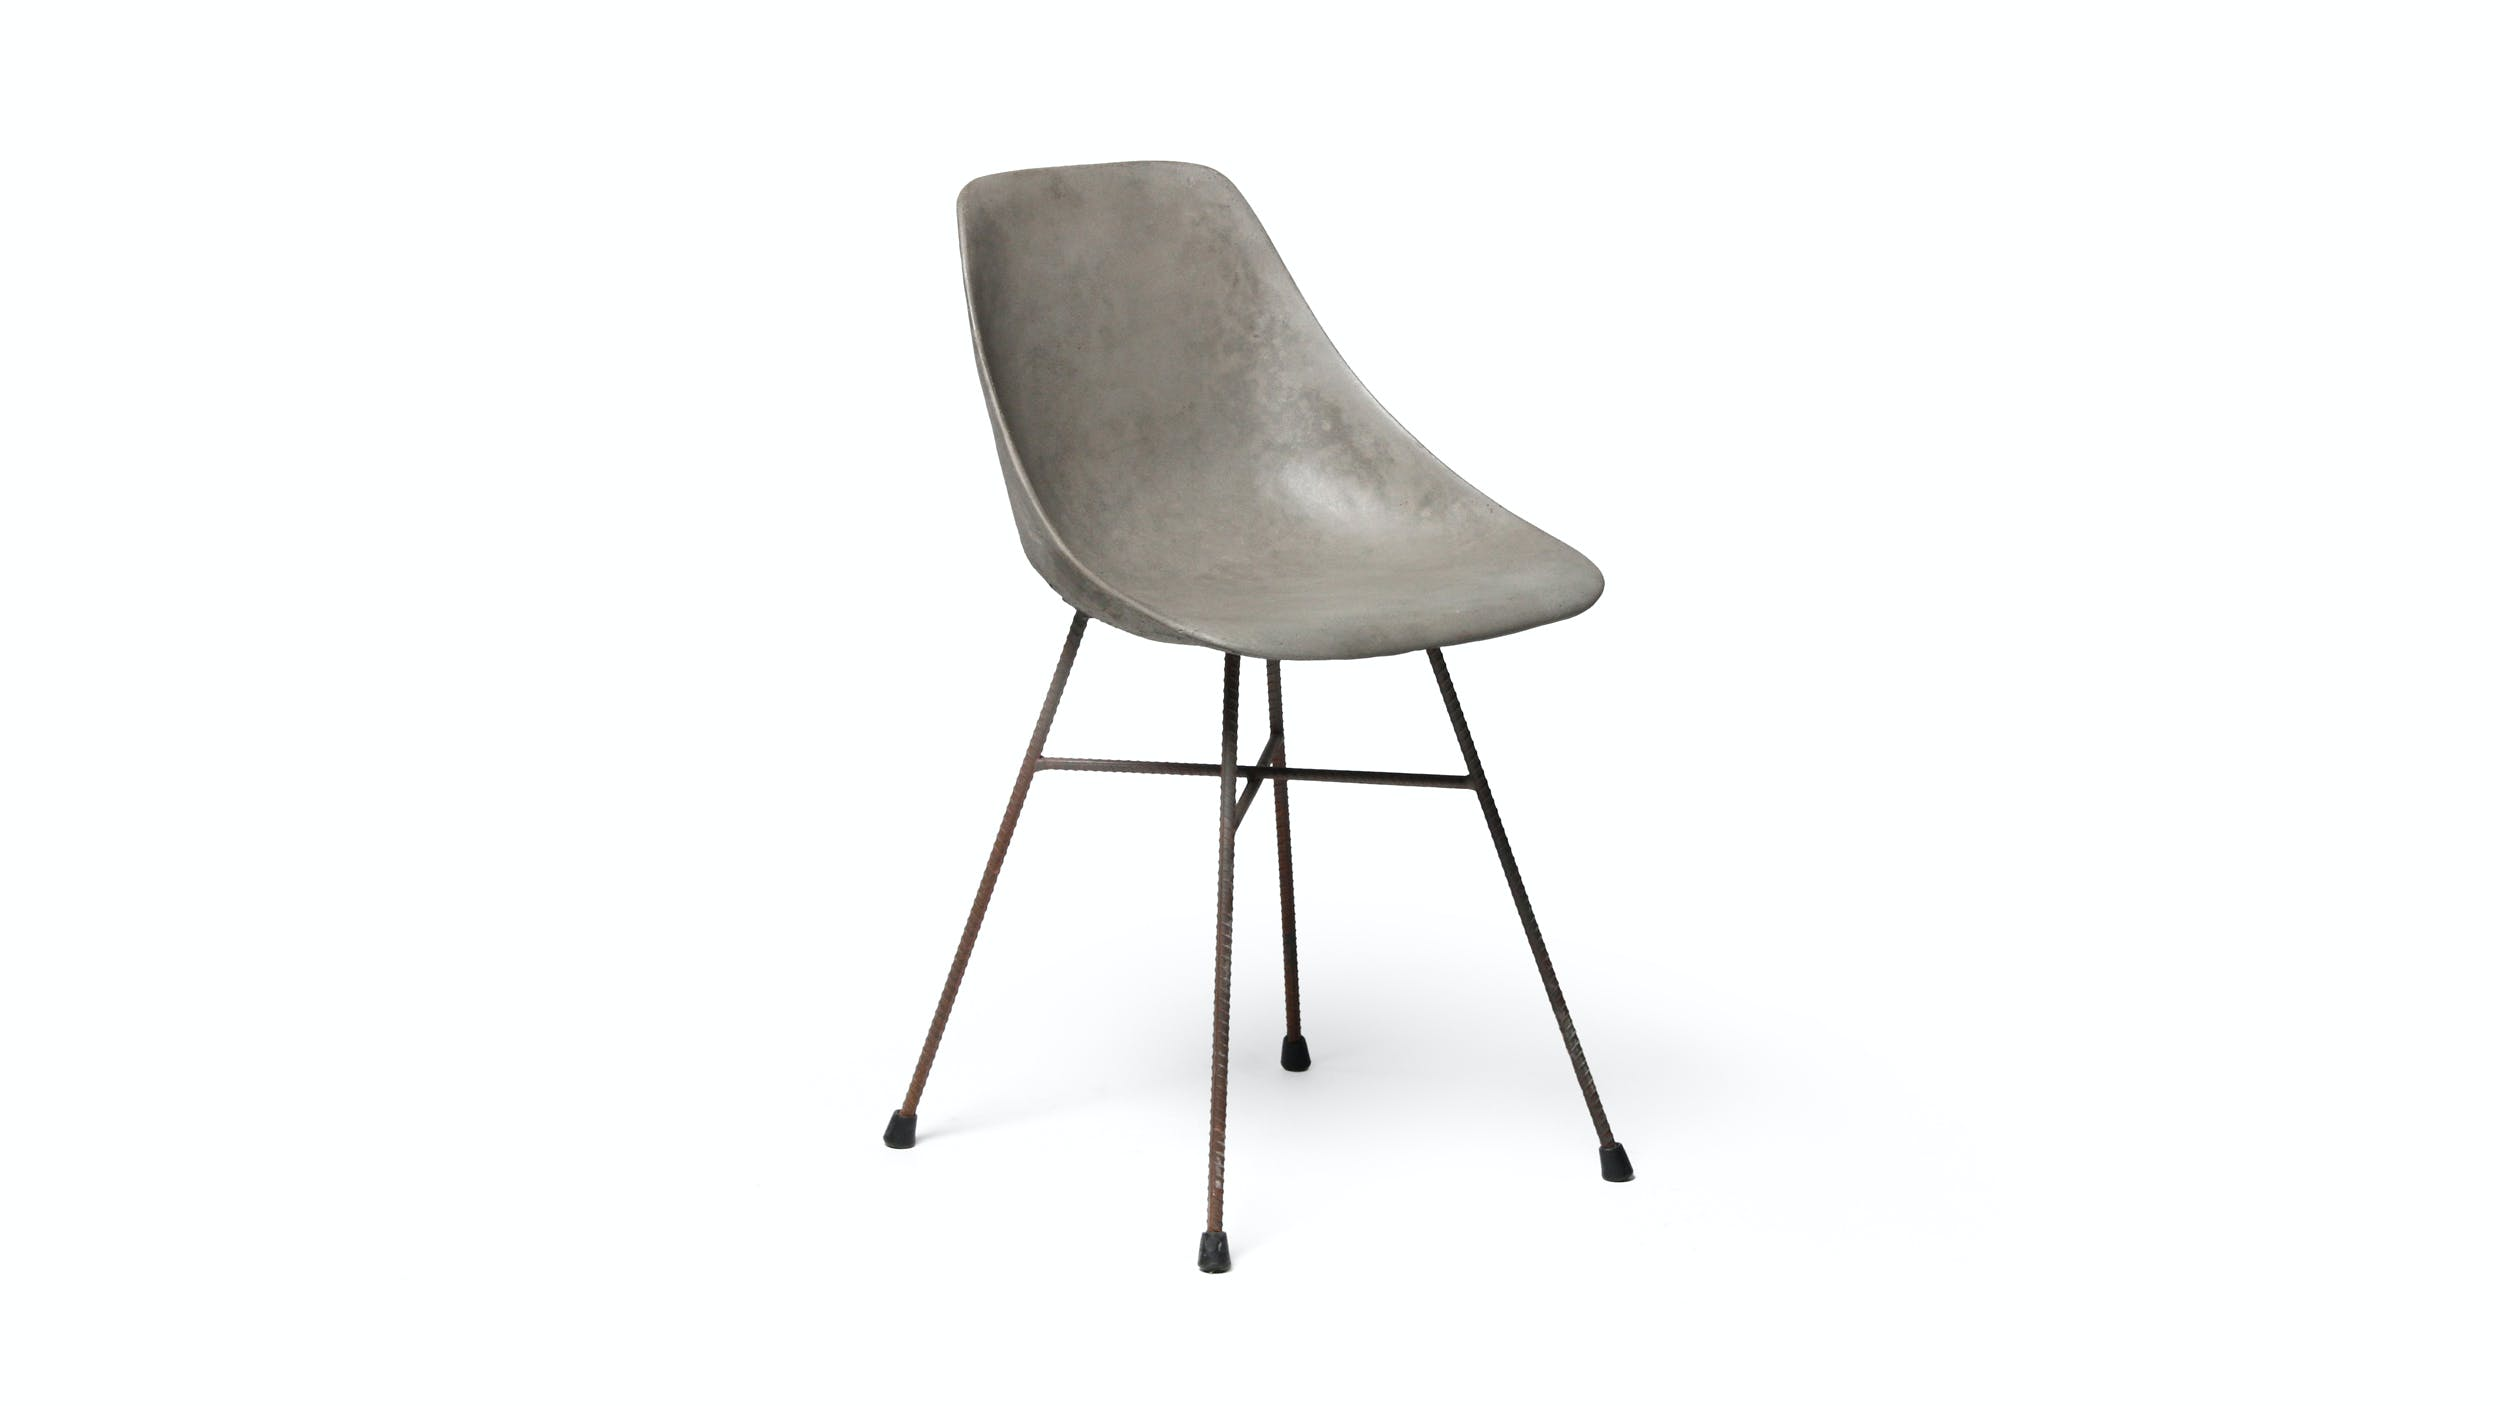 Dl 09222 Or Dl 09229 Hauteville Chair 00020